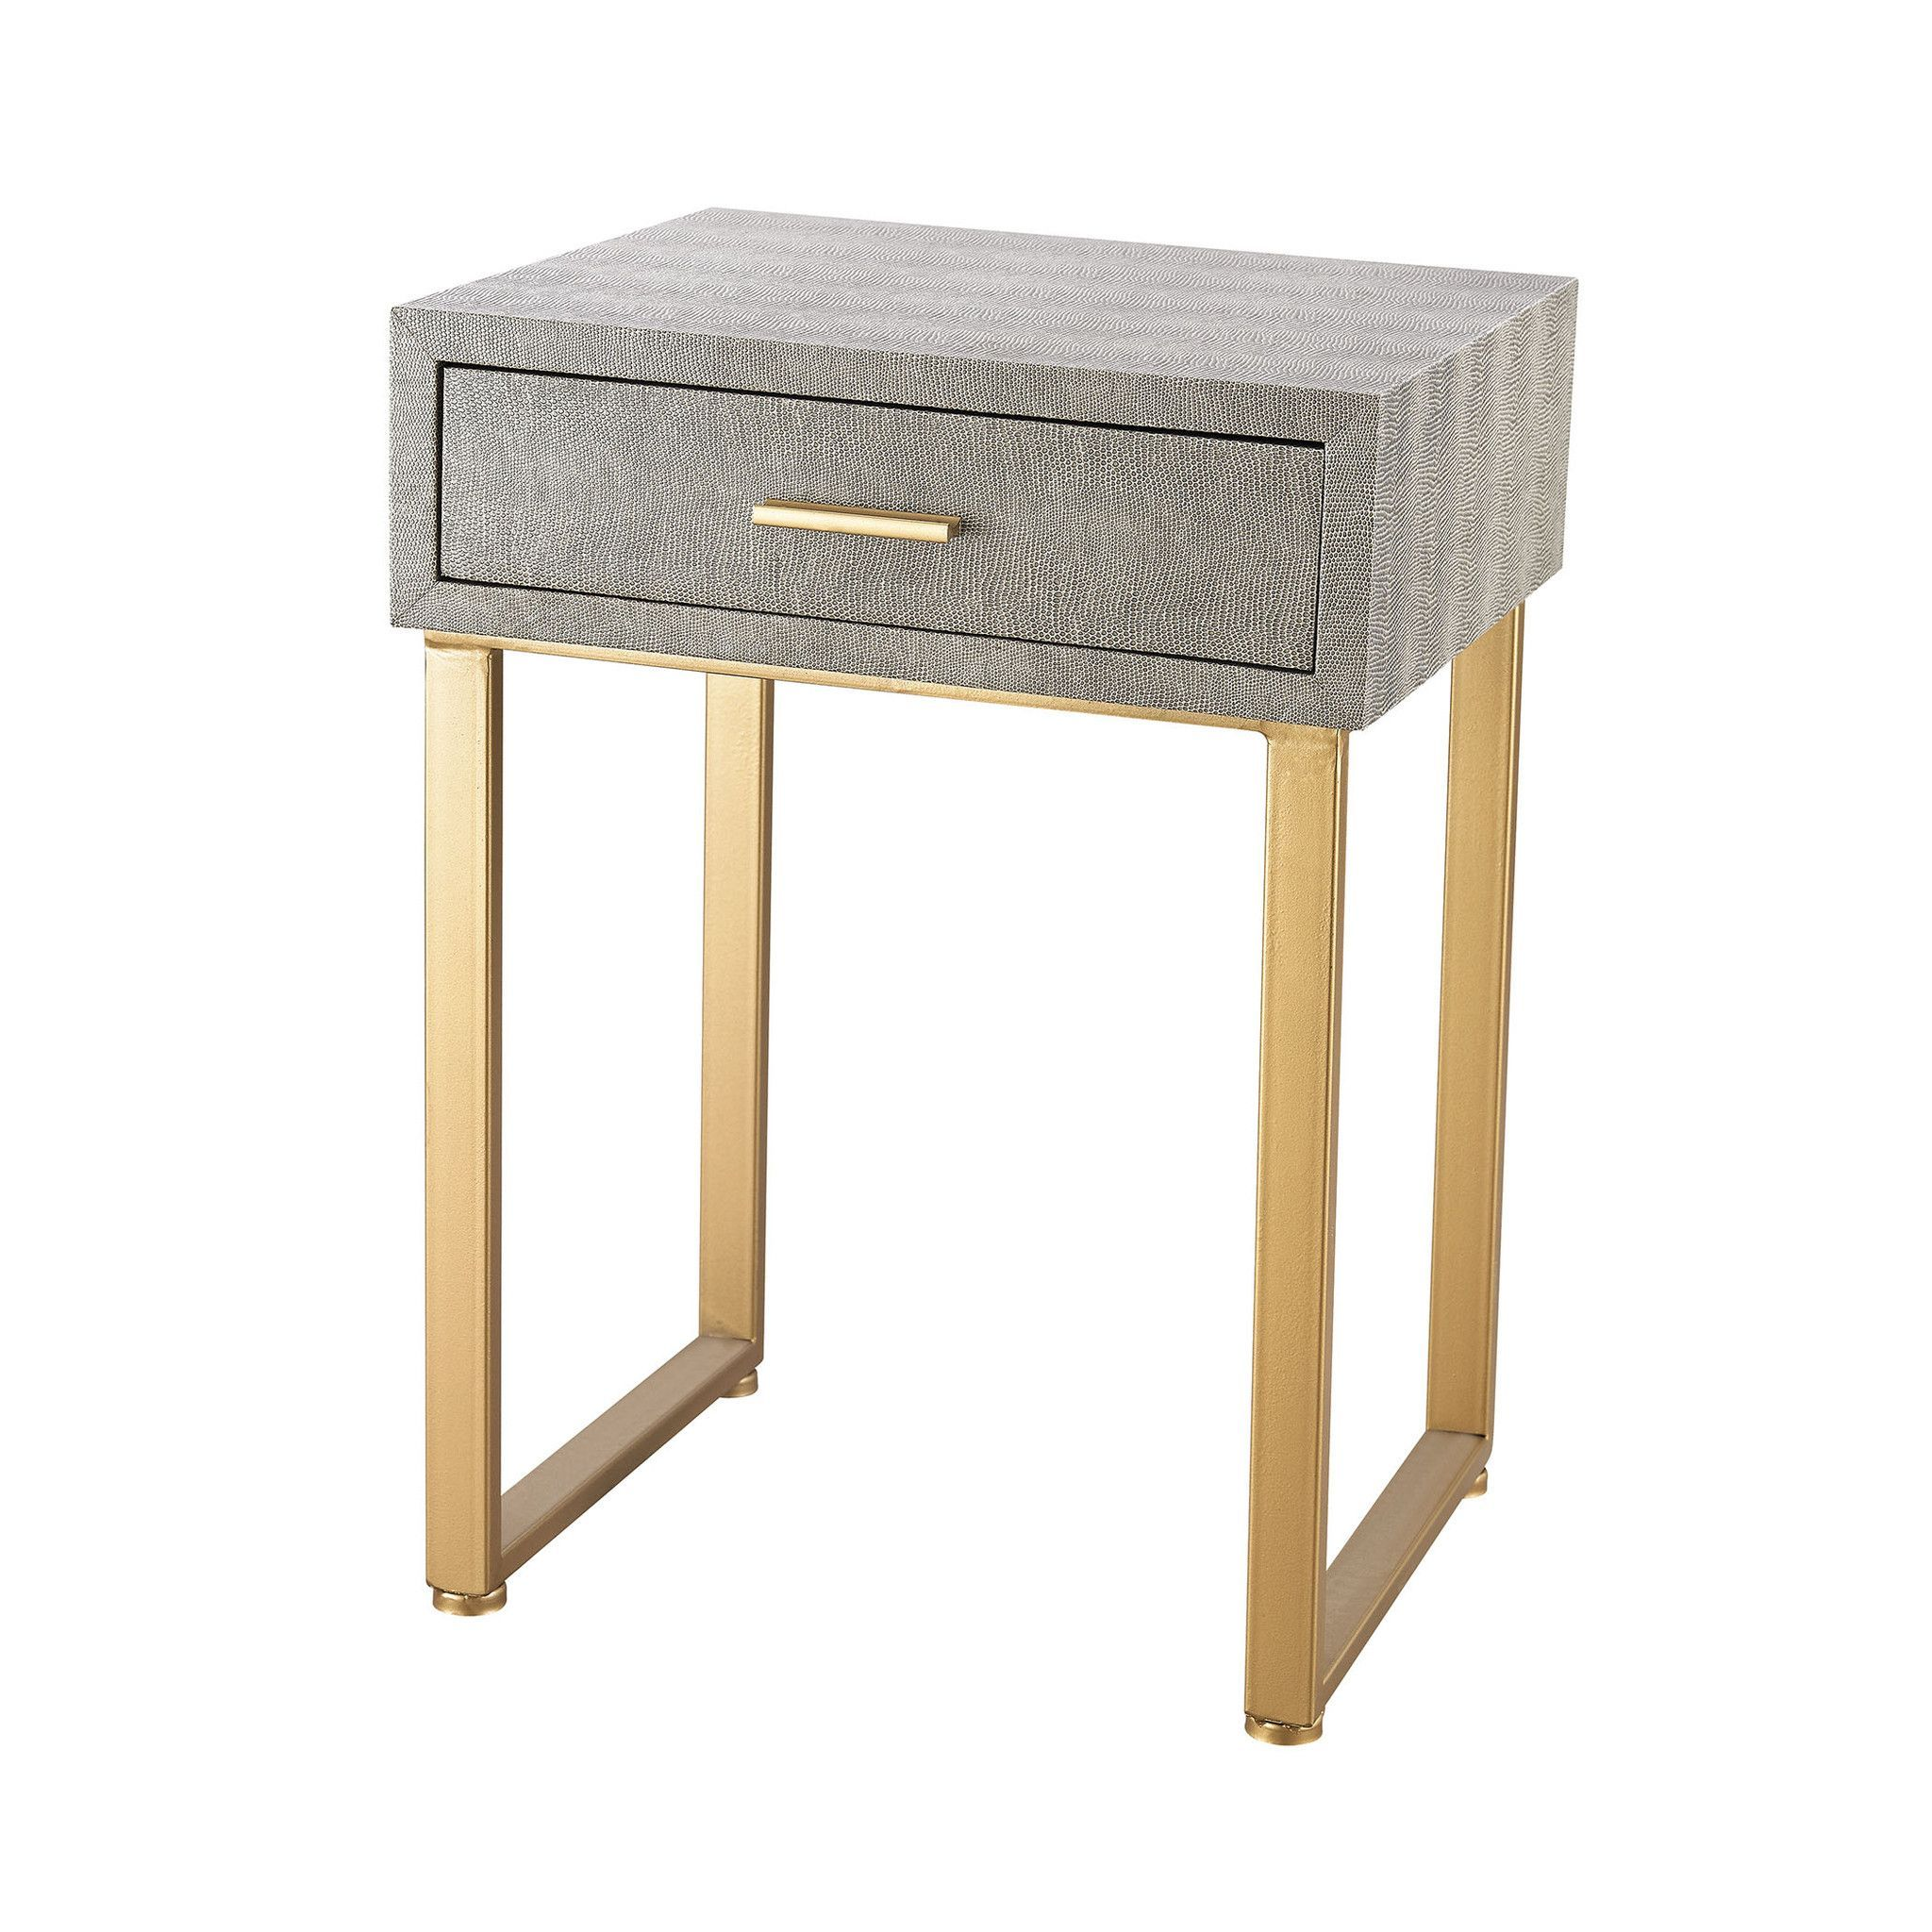 gold and grey beaufort point accent side table with drawer night corner wine cabinet target industrial coffee tablecloth measurements black outdoor marine style lighting